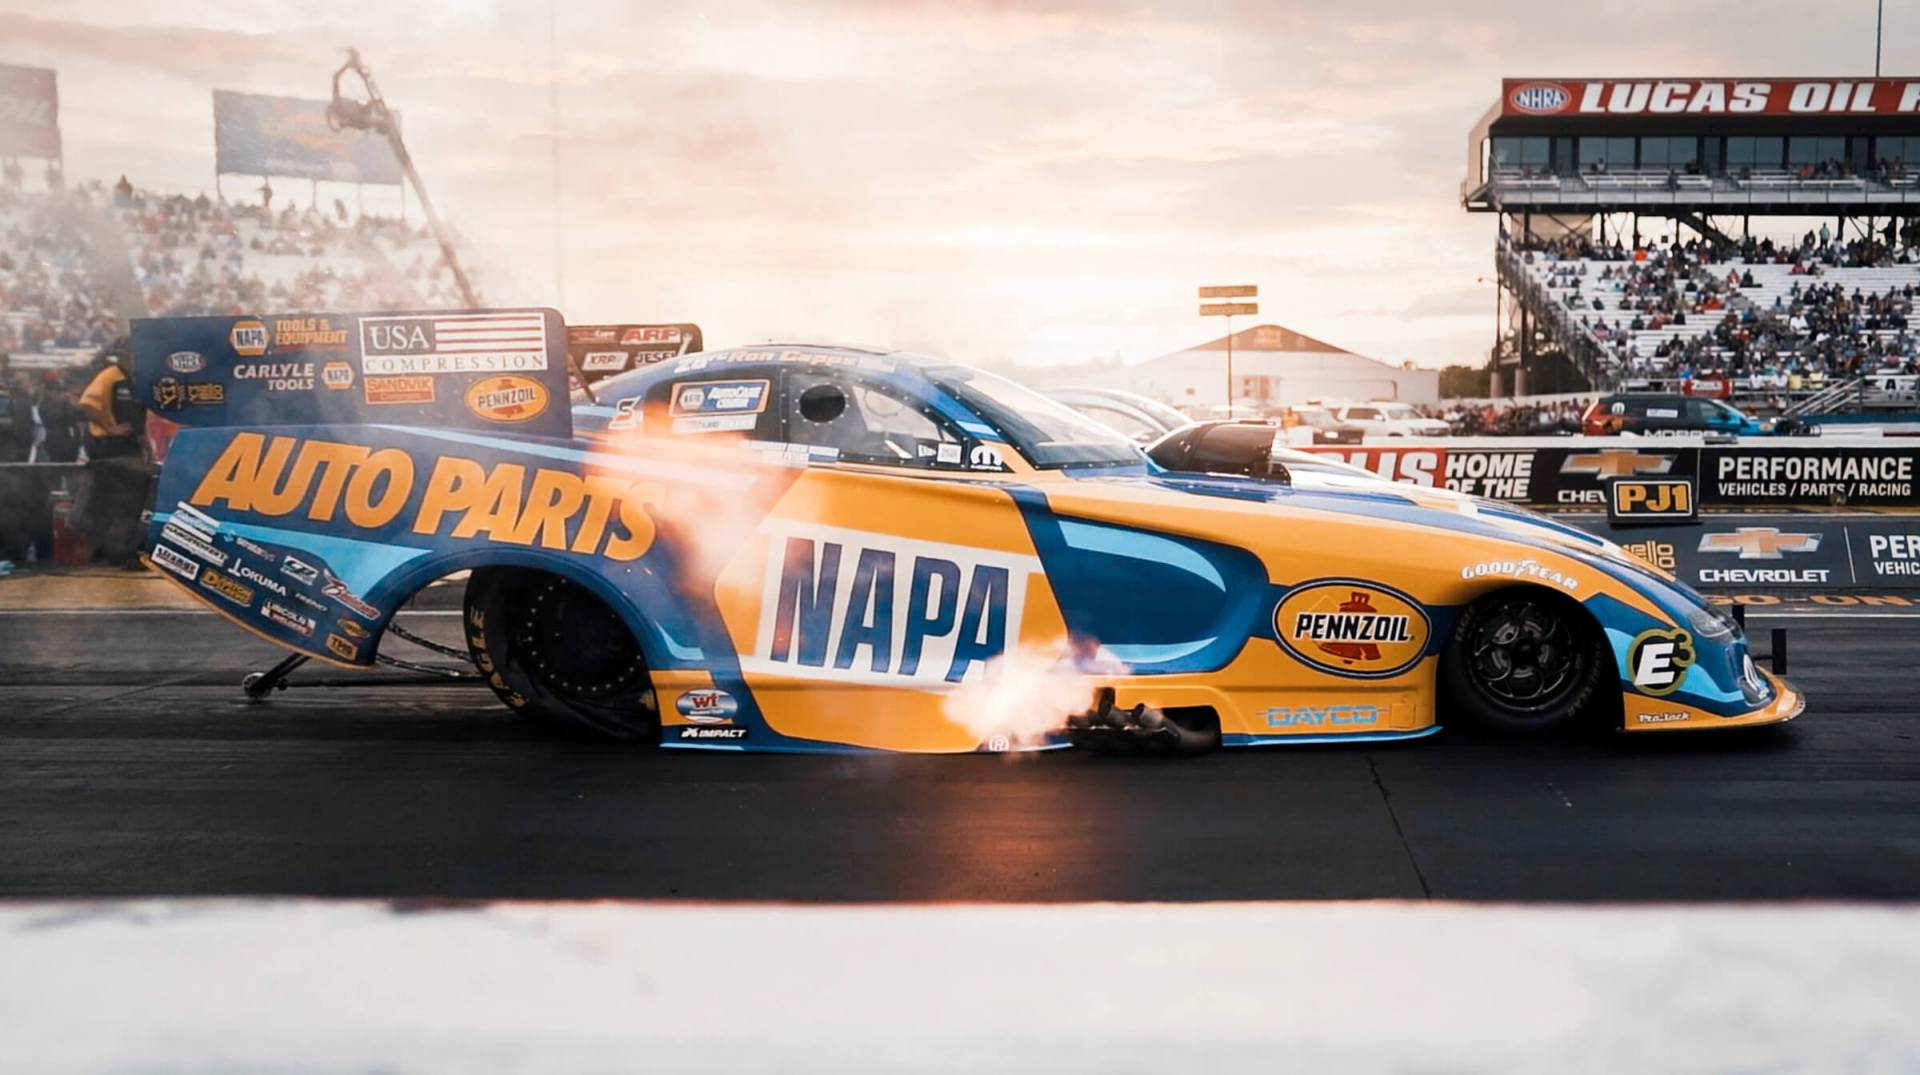 Ron Capps launches the NAPA Dodge at dusk at the 2019 NHRA U.S. Nationals.